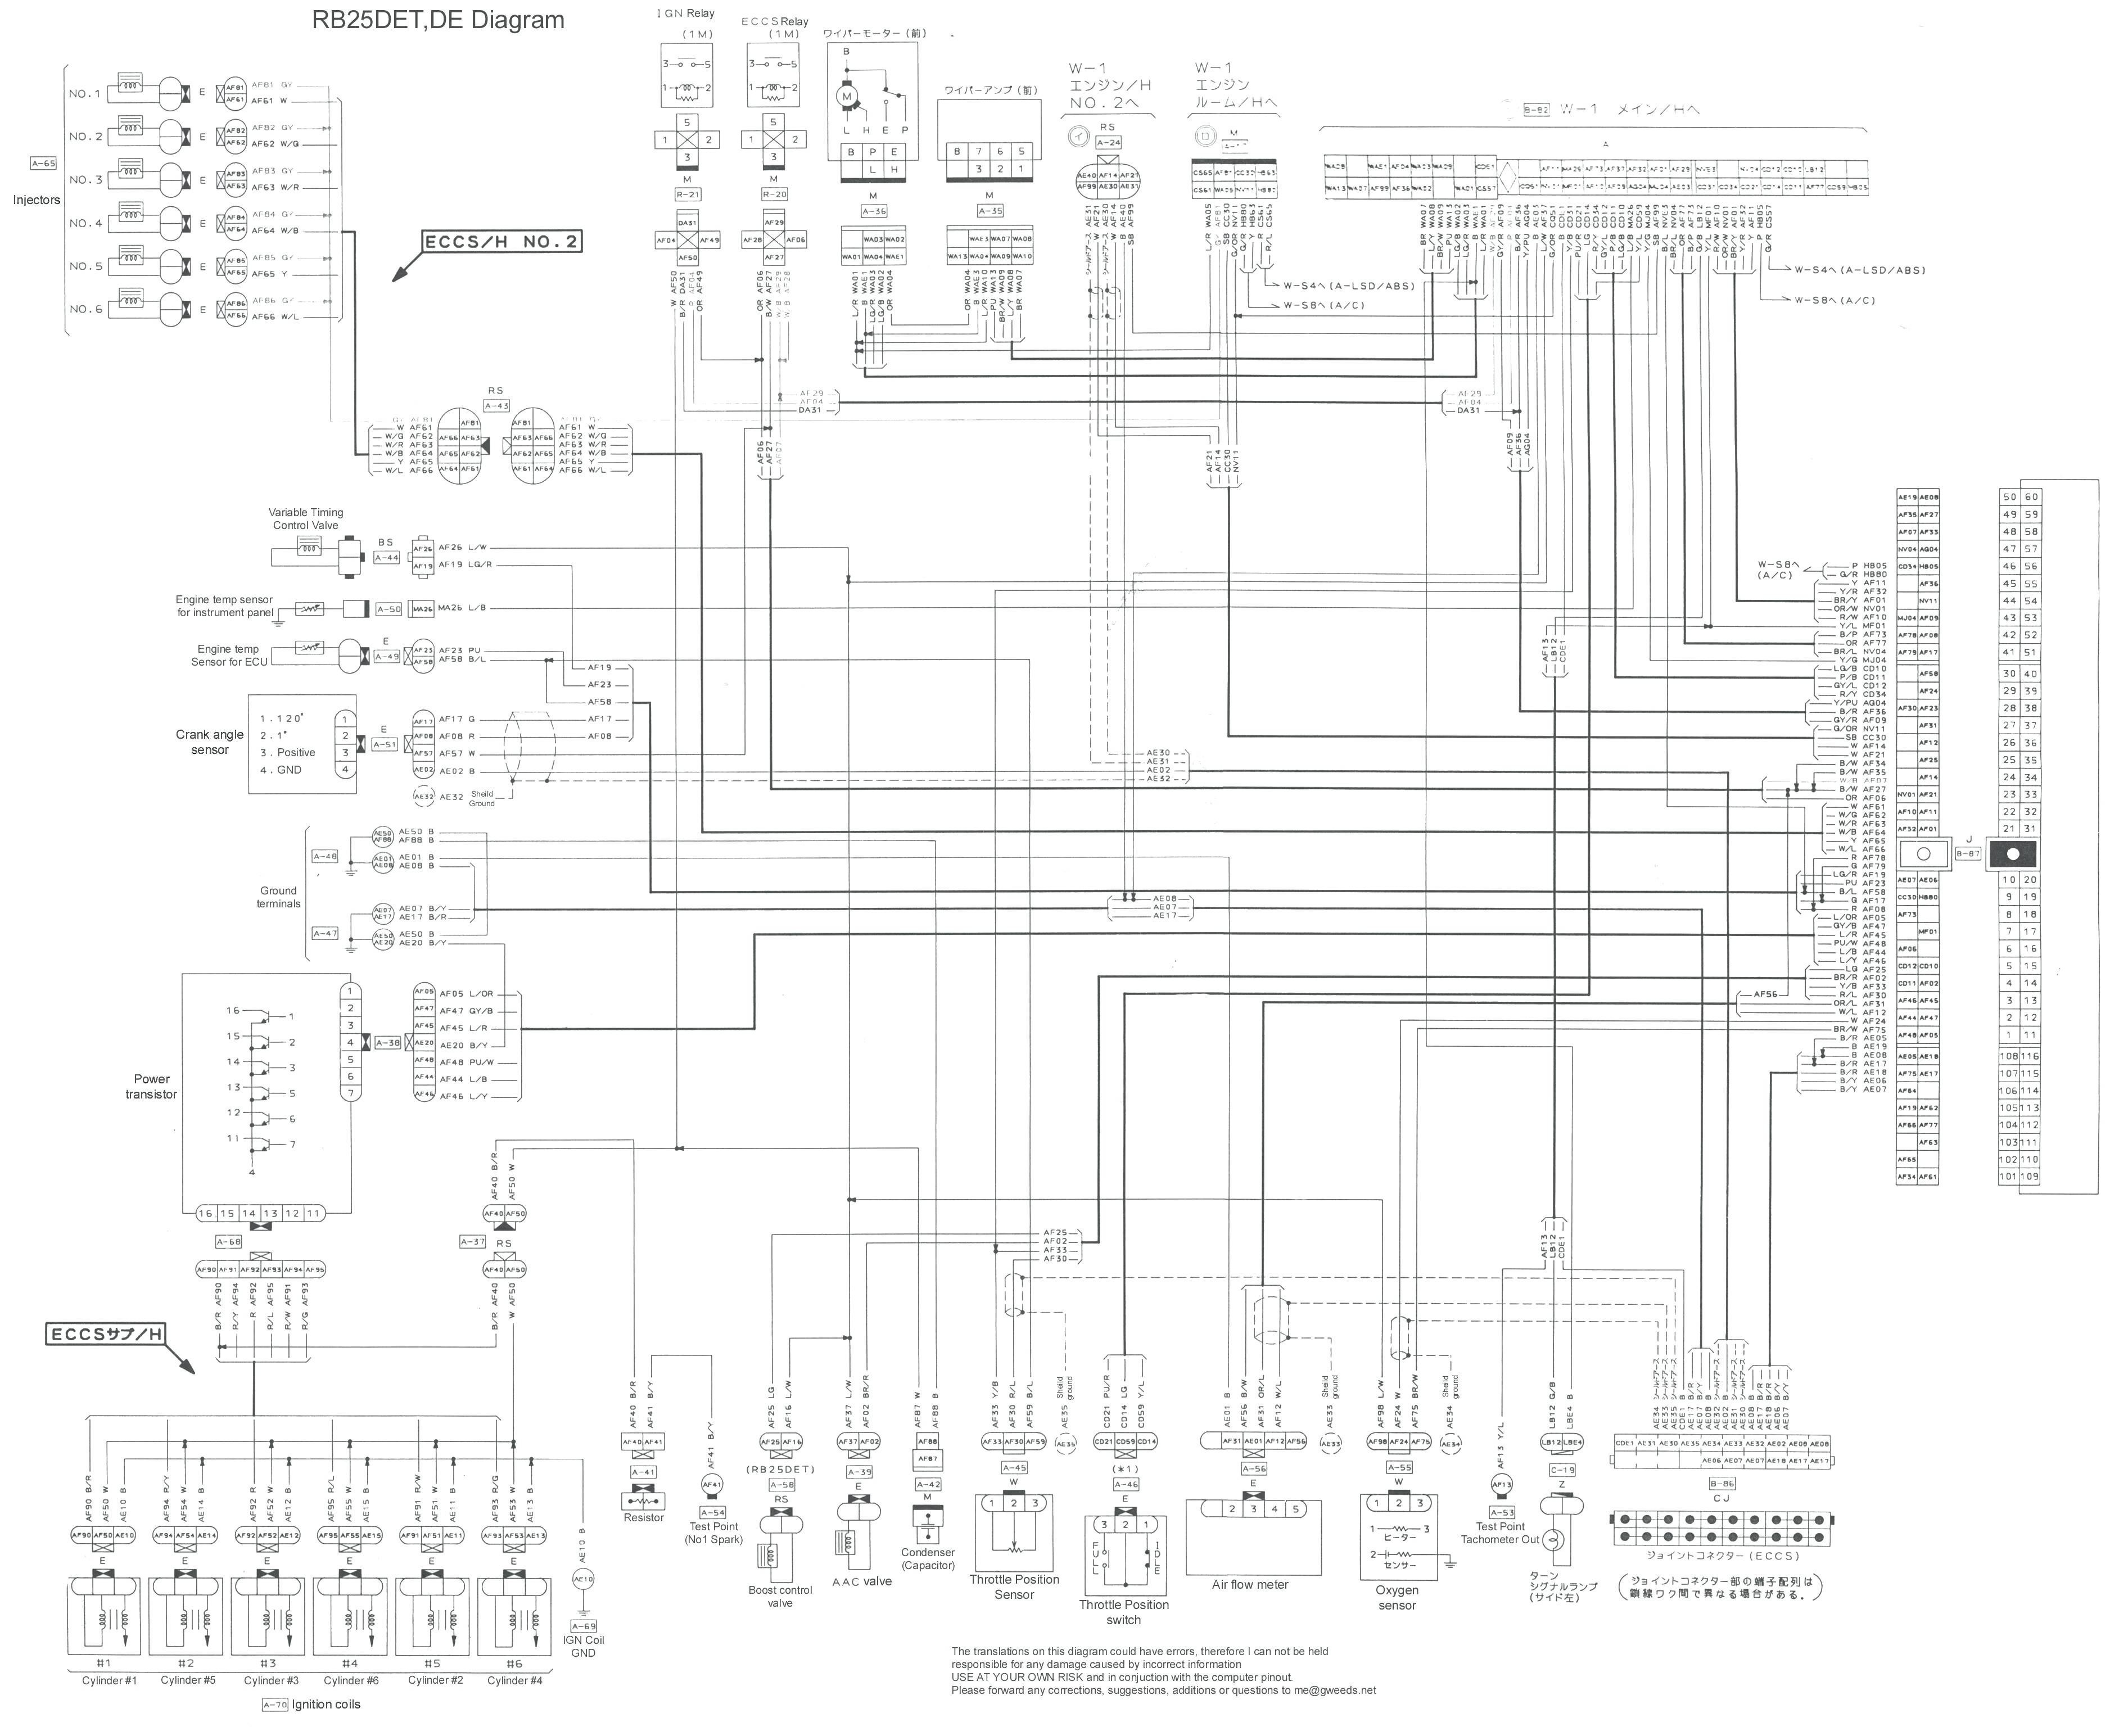 2002 Nissan Maxima Engine Diagram Wiring Diagram for 3 Way ... on